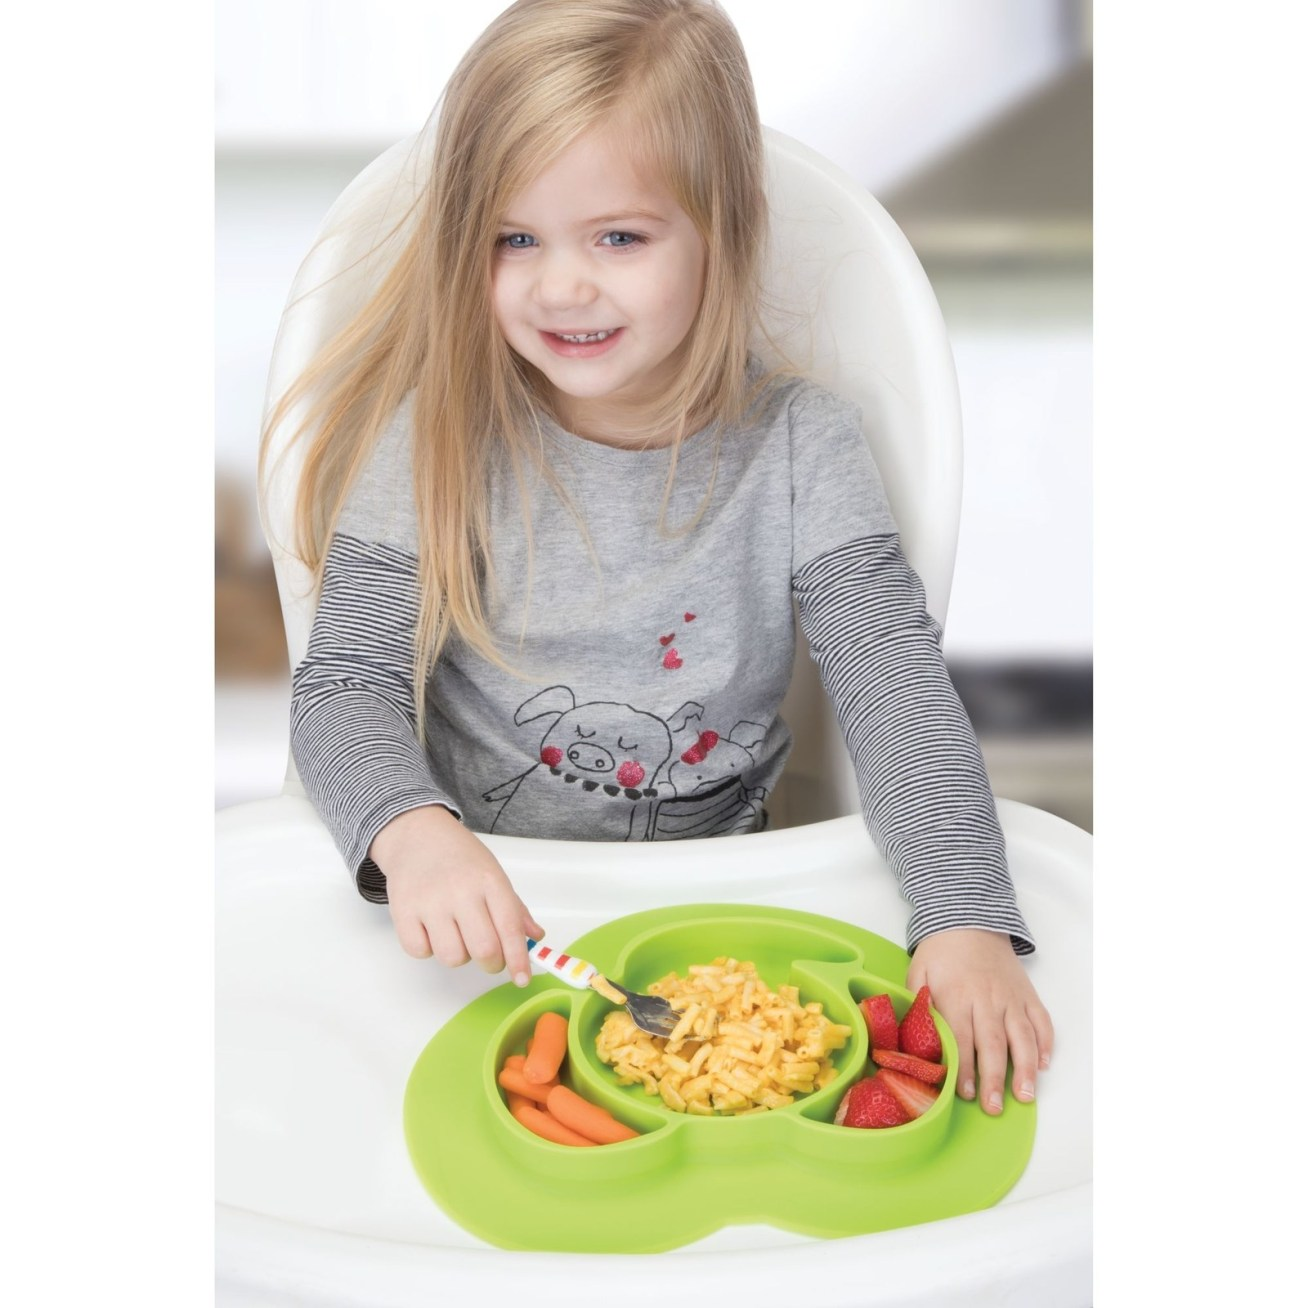 """It's shown here with an older kid who's using utensils, but it also works well for finger food like cheerios, strawberries, and small pieces of cheese. It's dishwasher safe of course! Promising review: """"This plate is so cute and very effective. My one year old grandson likes to dump the food off his plate and onto his highchair tray. He is so frustrated now because he can no longer pull those shenanigans. LOL! The suction is excellent on countertops and highchair trays. Some wood kitchen tables may be a little problematic. Highly recommend for the efficiency — and the look on your kids face when they can't toss their plate on the floor is priceless."""" —OneEyedKristyGet it from Walmart for .95."""